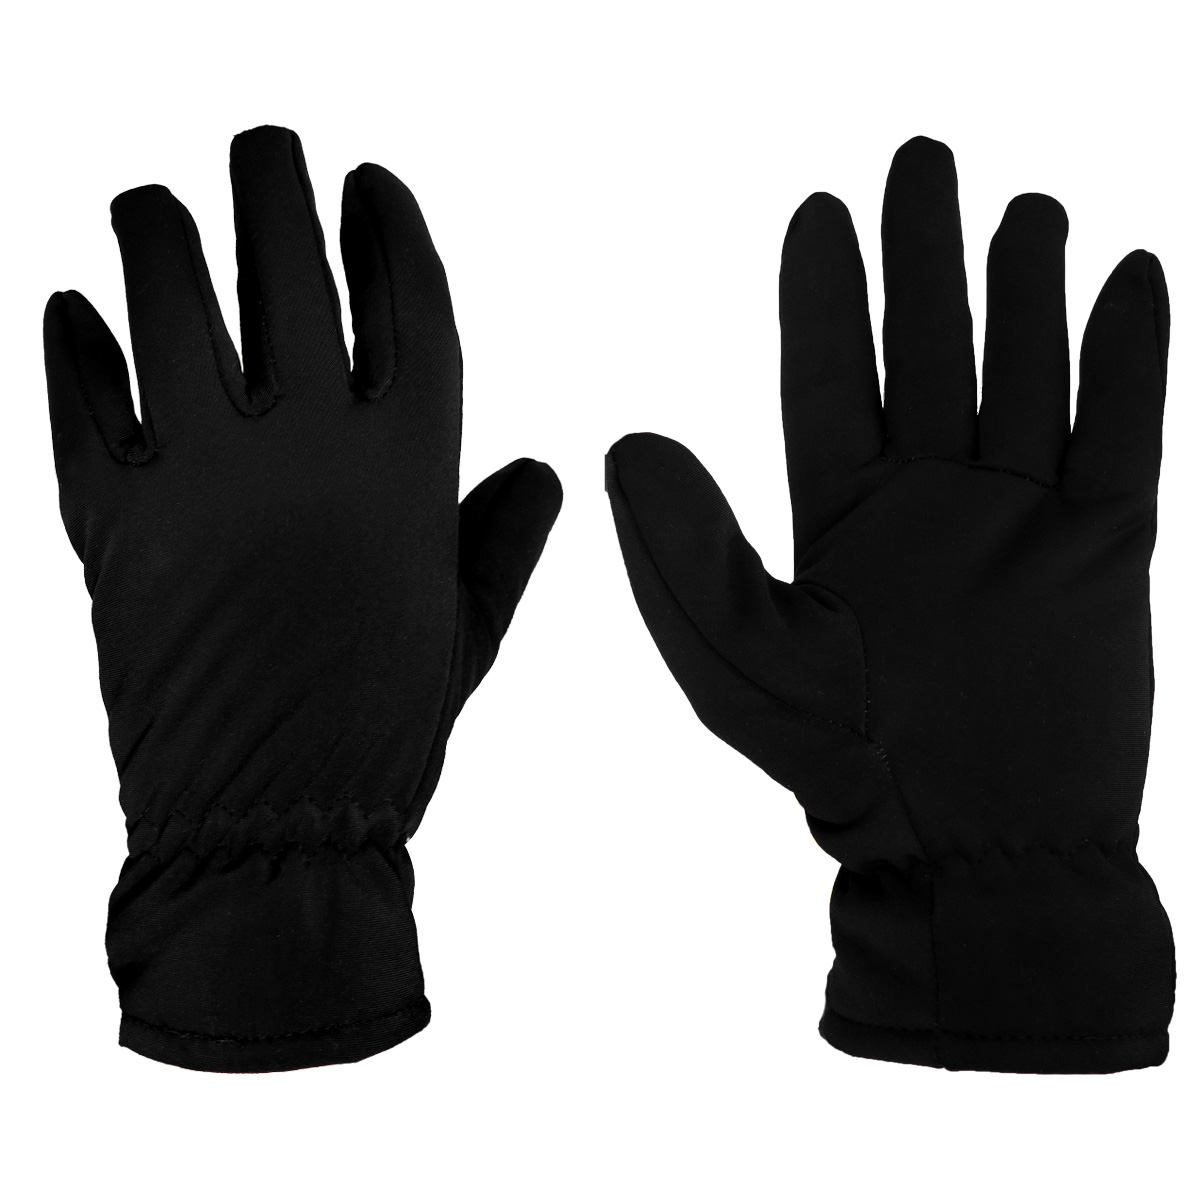 Polar Extreme Unisex Insulated Thermal Gloves with Fleece lining (S/M)